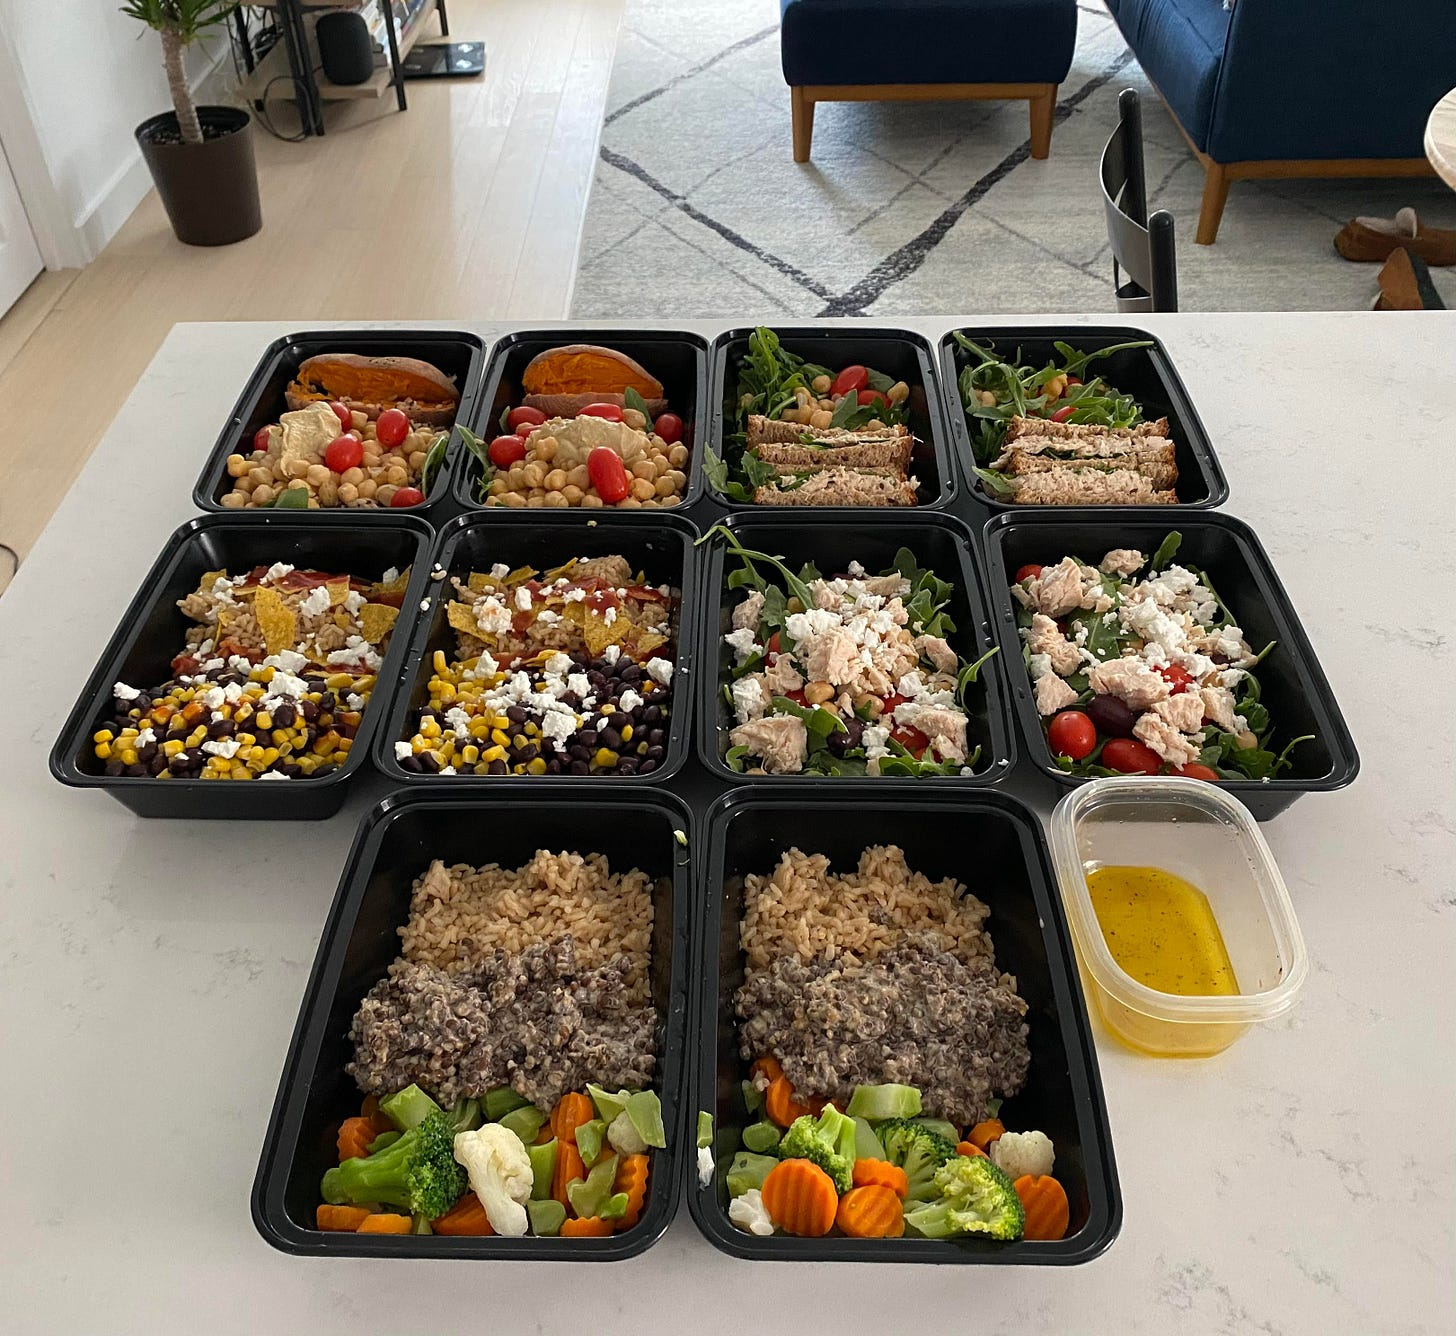 r/recipes - 5 Minute Meals - I made a bunch of 5-minute meal recipes that you can use to save time or if you're in a rush!